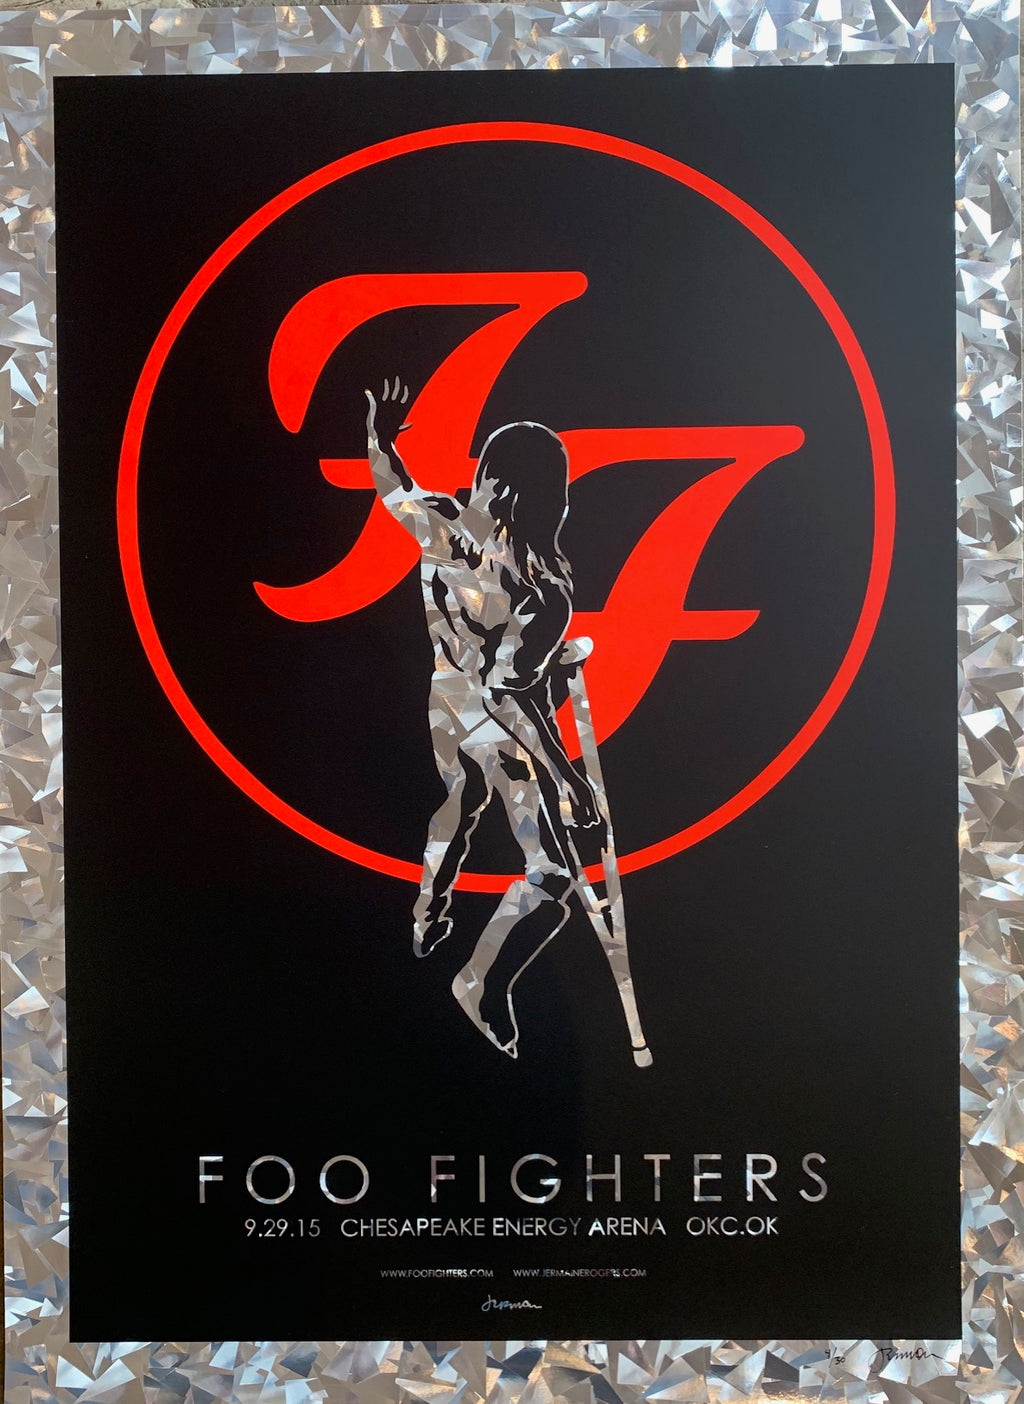 Foo Fighters 9.29.15 OKC 4/30